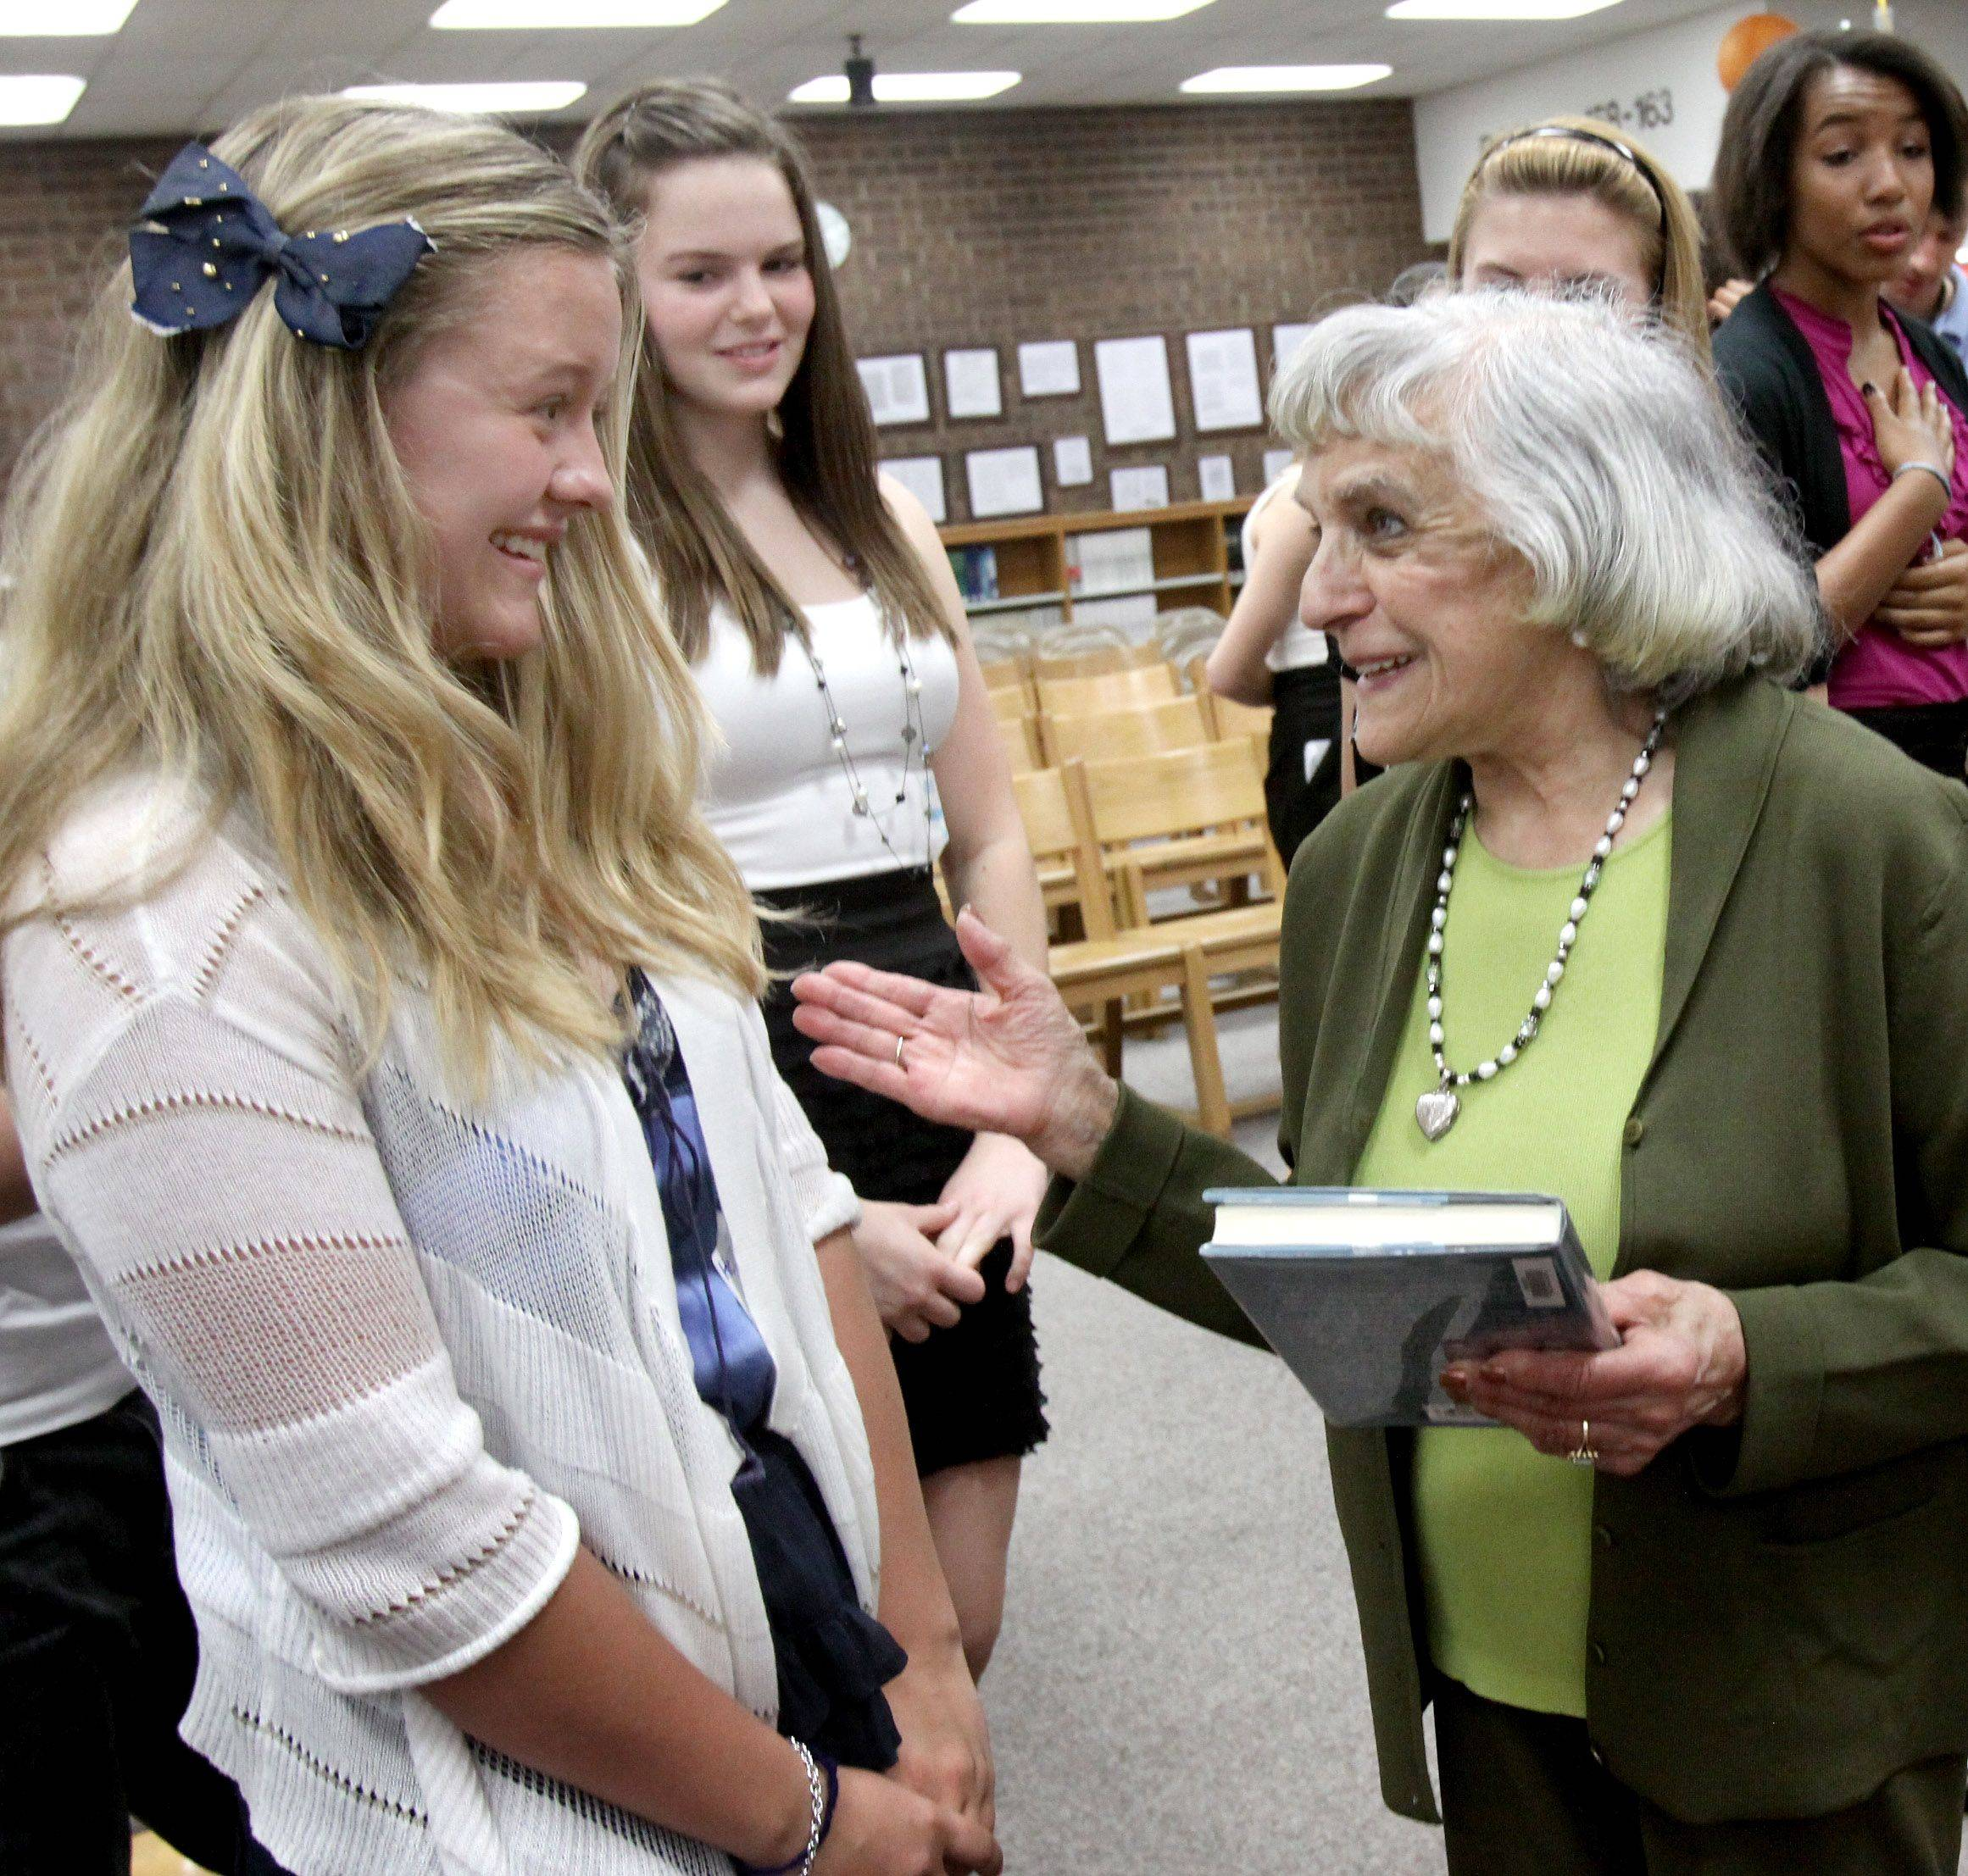 Naperville students surprised by reunited Jewish refugees